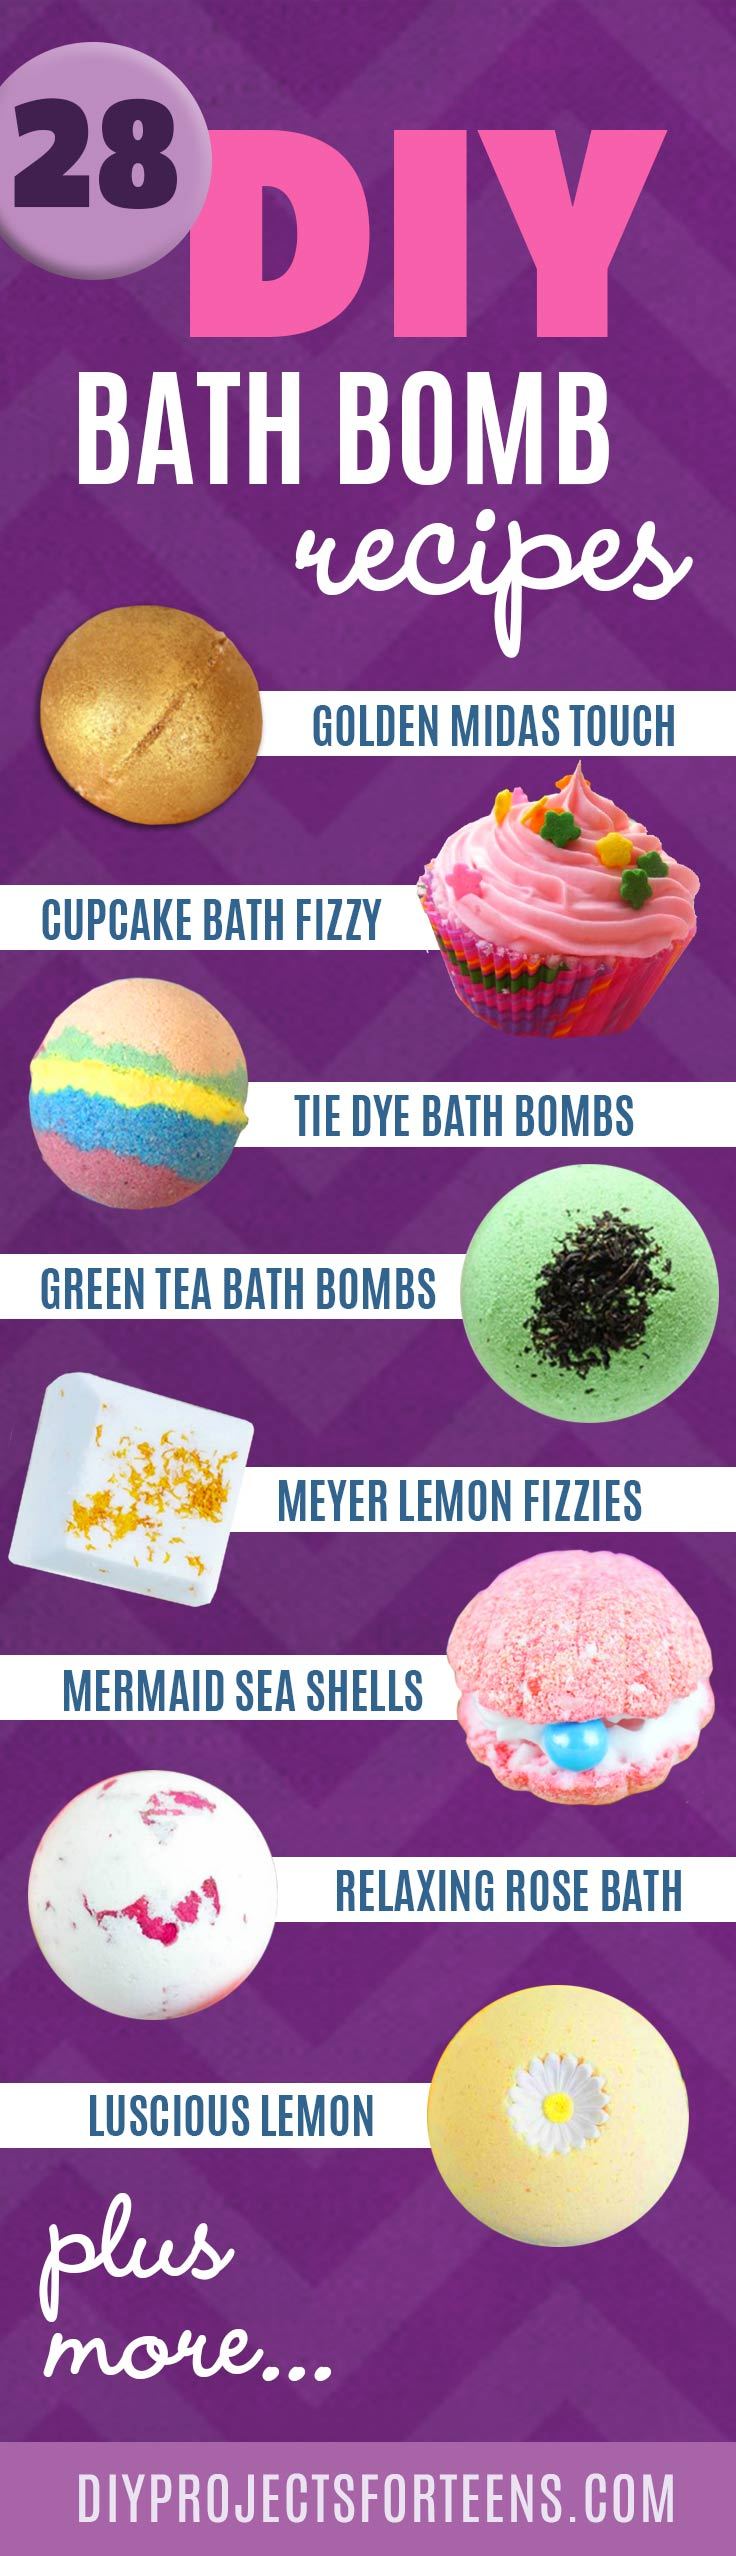 Homemade DIY Bath Bombs | Bath Bombs Tutorial Like Lush - Recipes for 28 Awesome Bathbombs | Pretty and Cheap DIY Gifts | DIY Projects and Crafts by DIY JOY